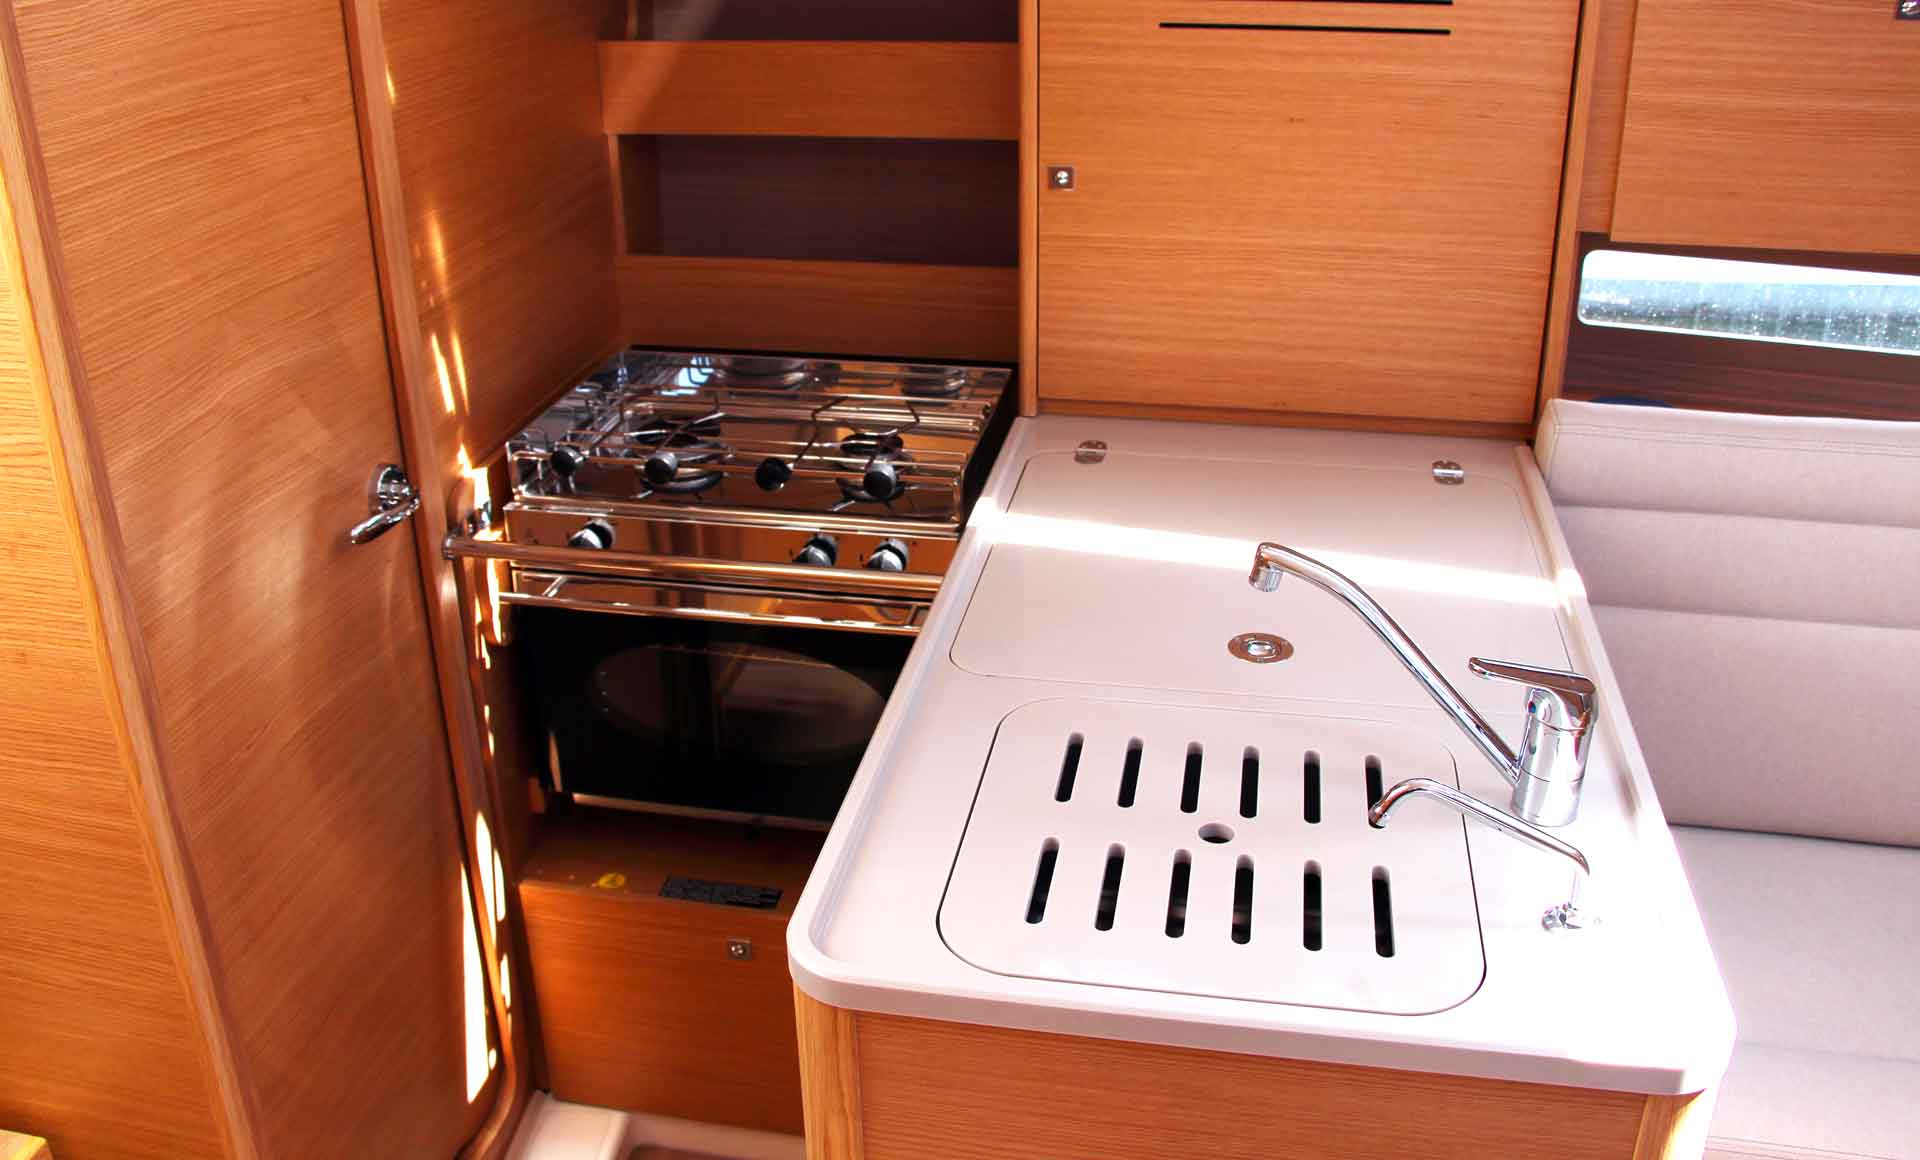 A completely well equipped galley